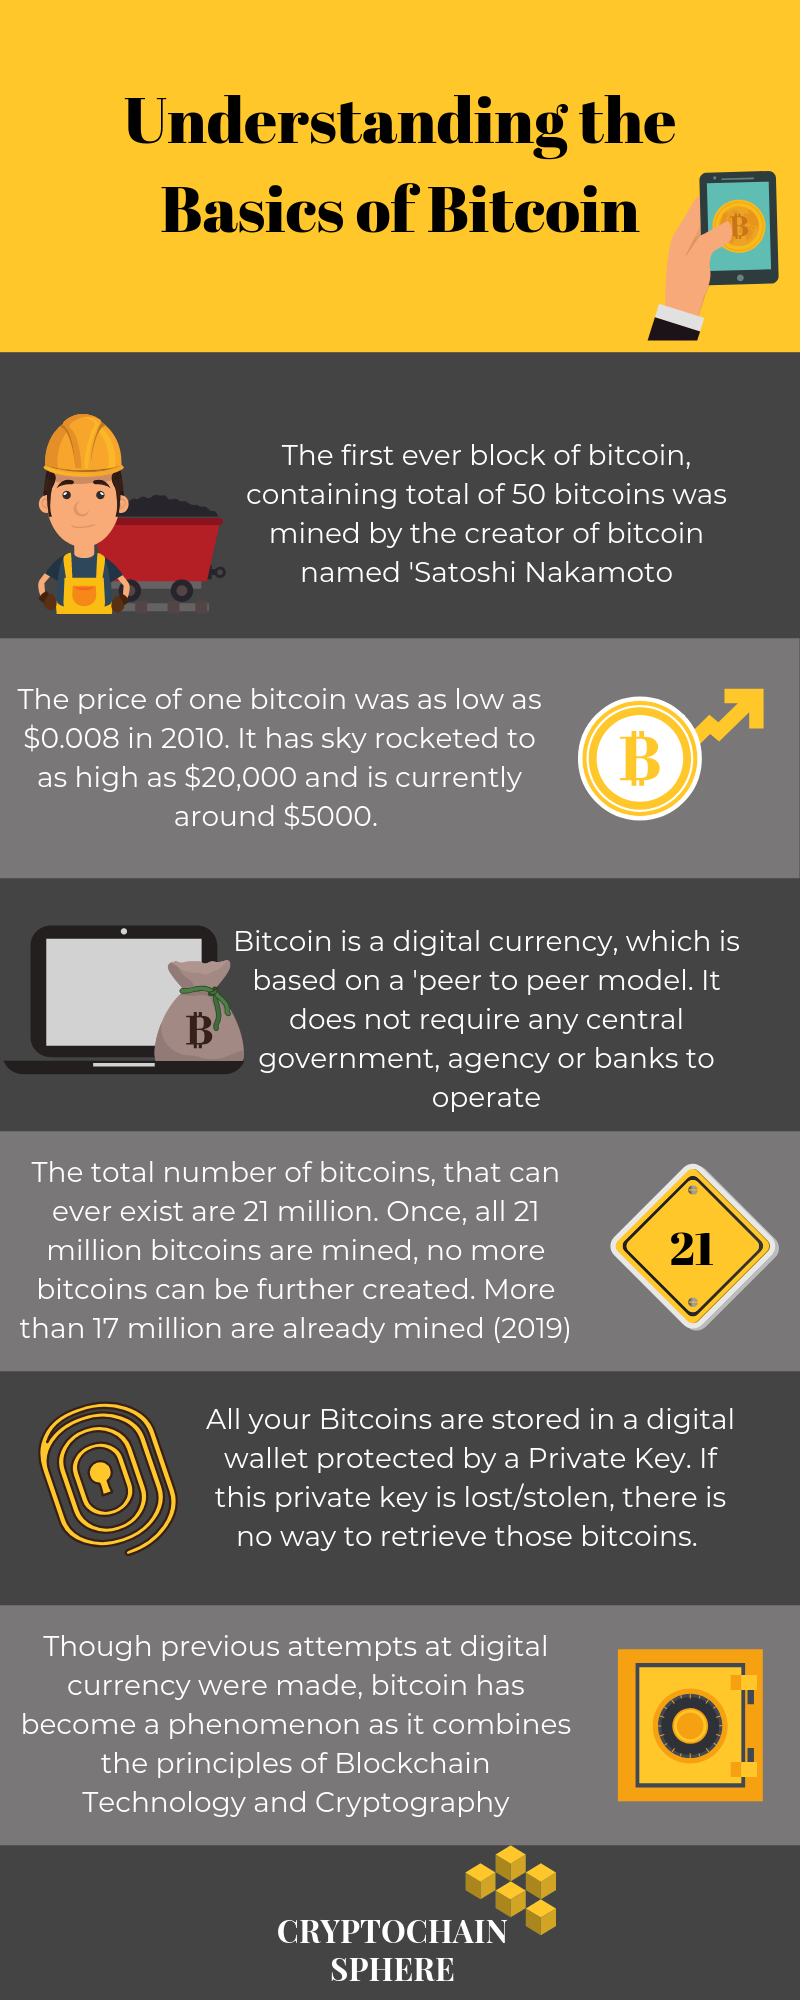 bitcoins for dummies explained further